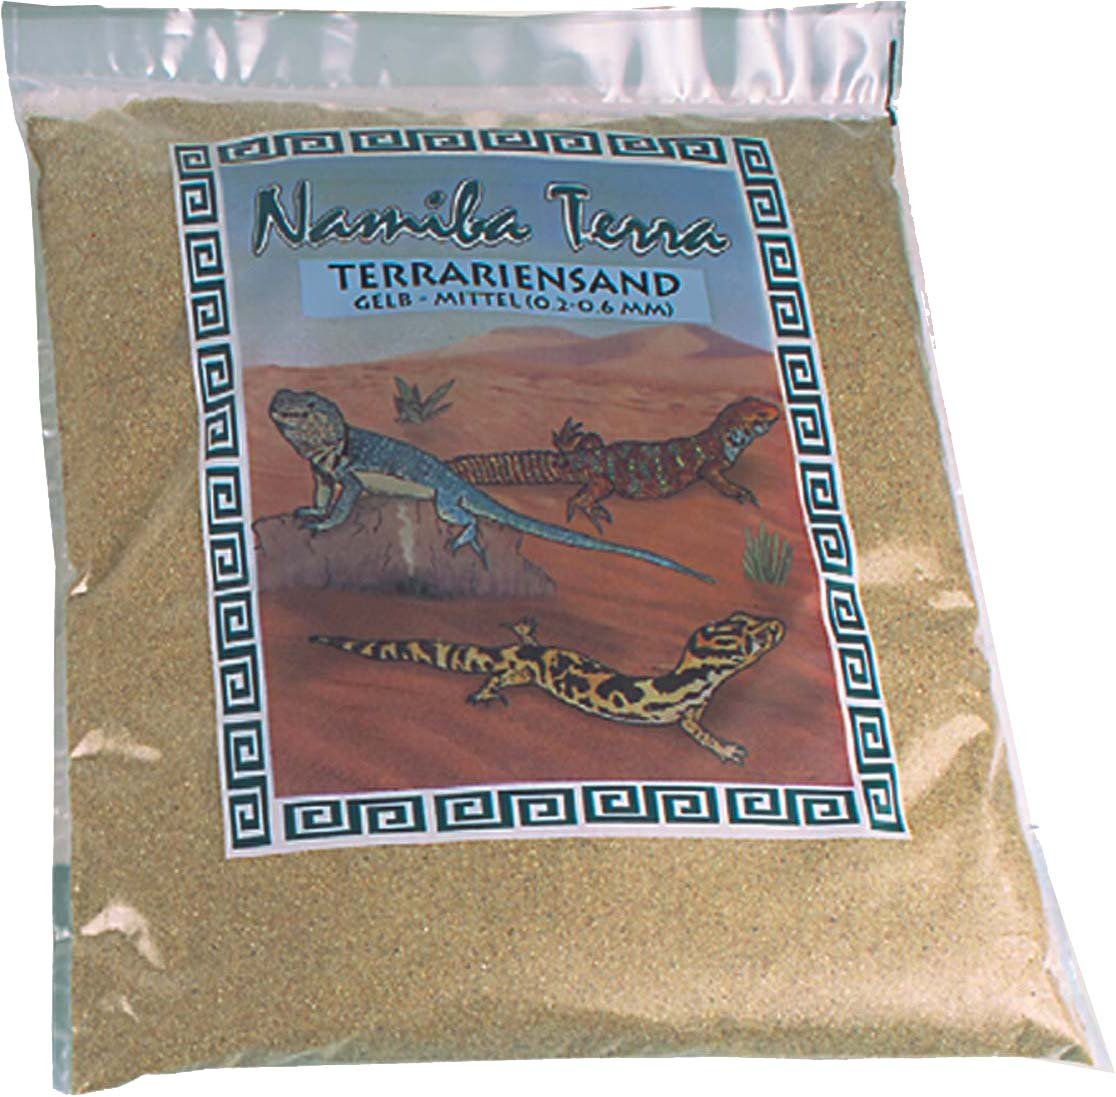 Namiba Terra 0122  terrarios Arena, 5  kg Medium 0.2  mm  –   0.6  mm, amarillo 5 kg Medium 0.2 mm - 0.6 mm